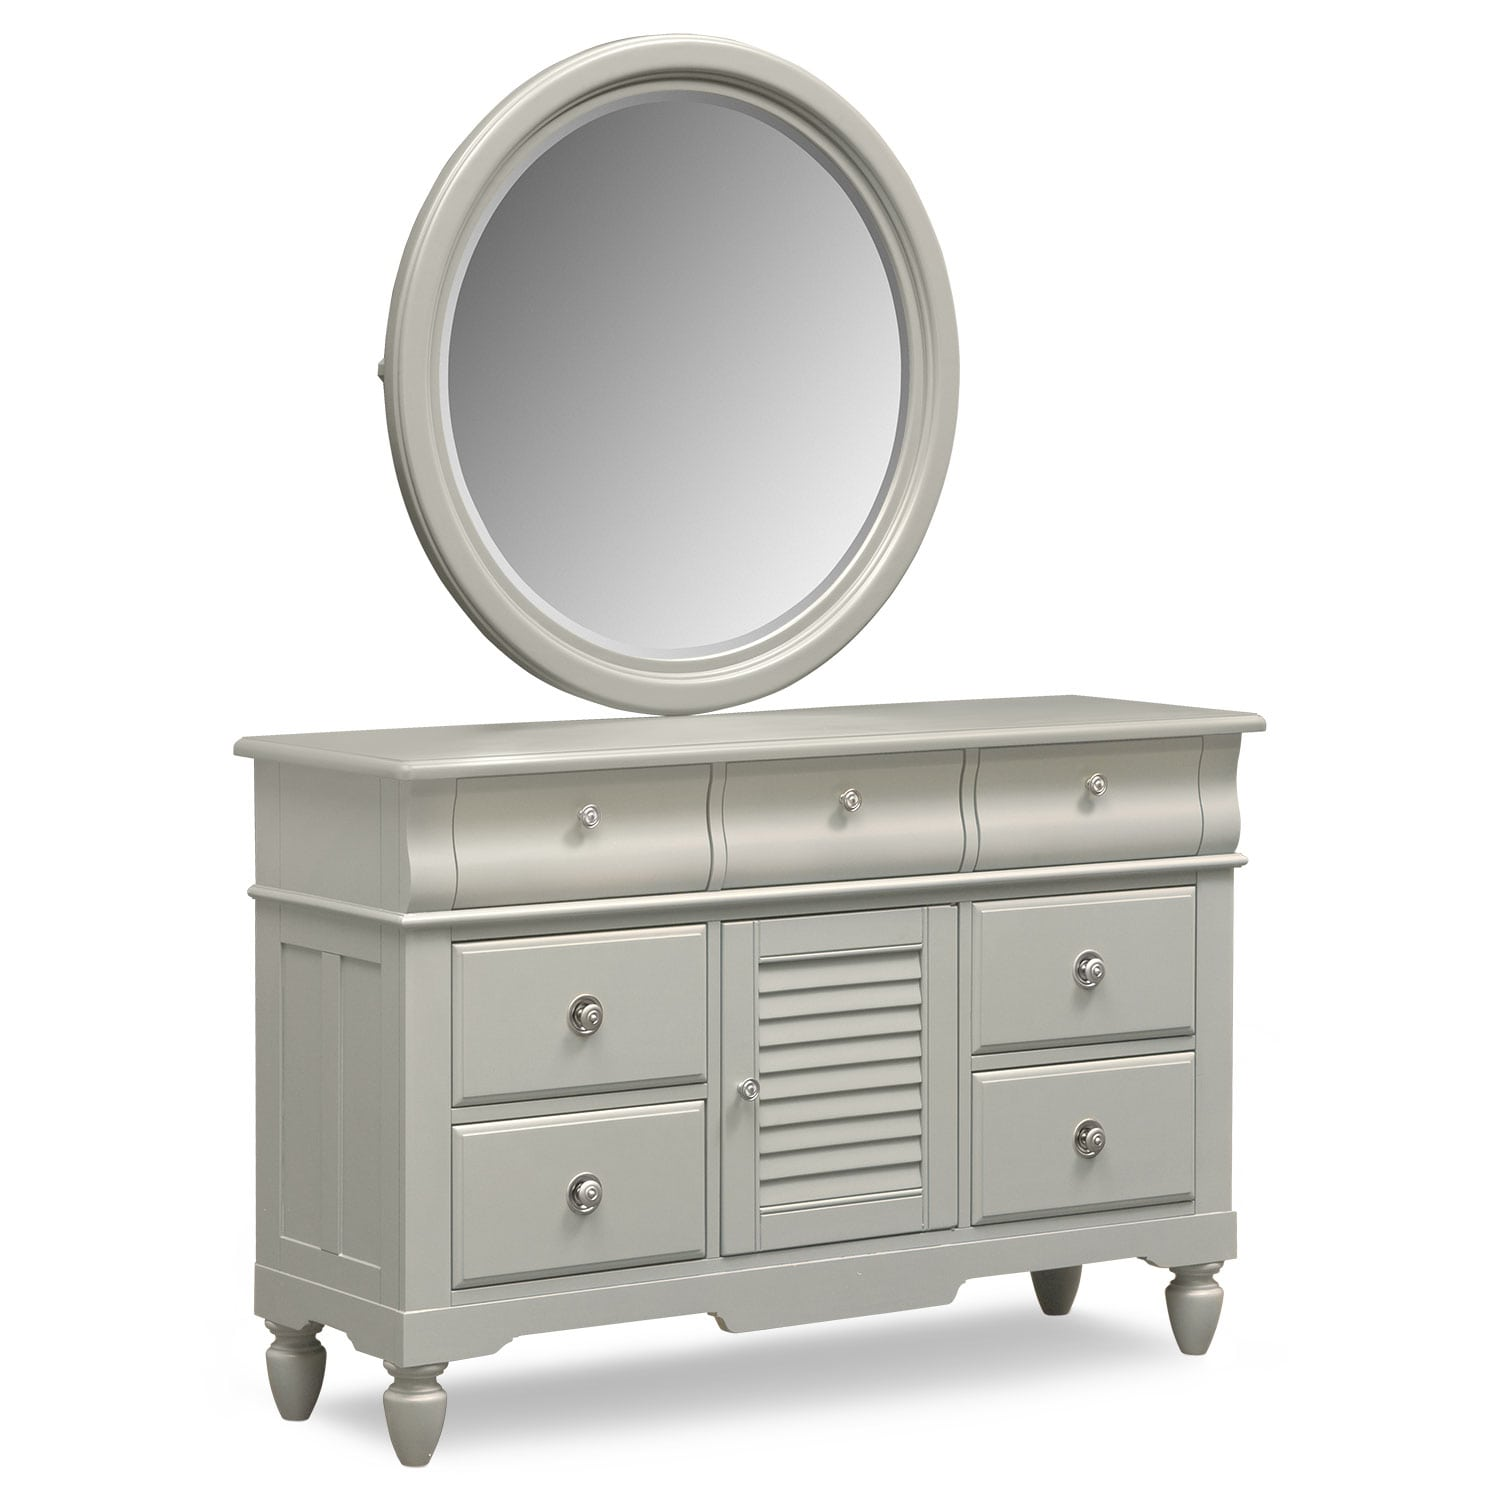 Seaside Dresser and Mirror - Gray